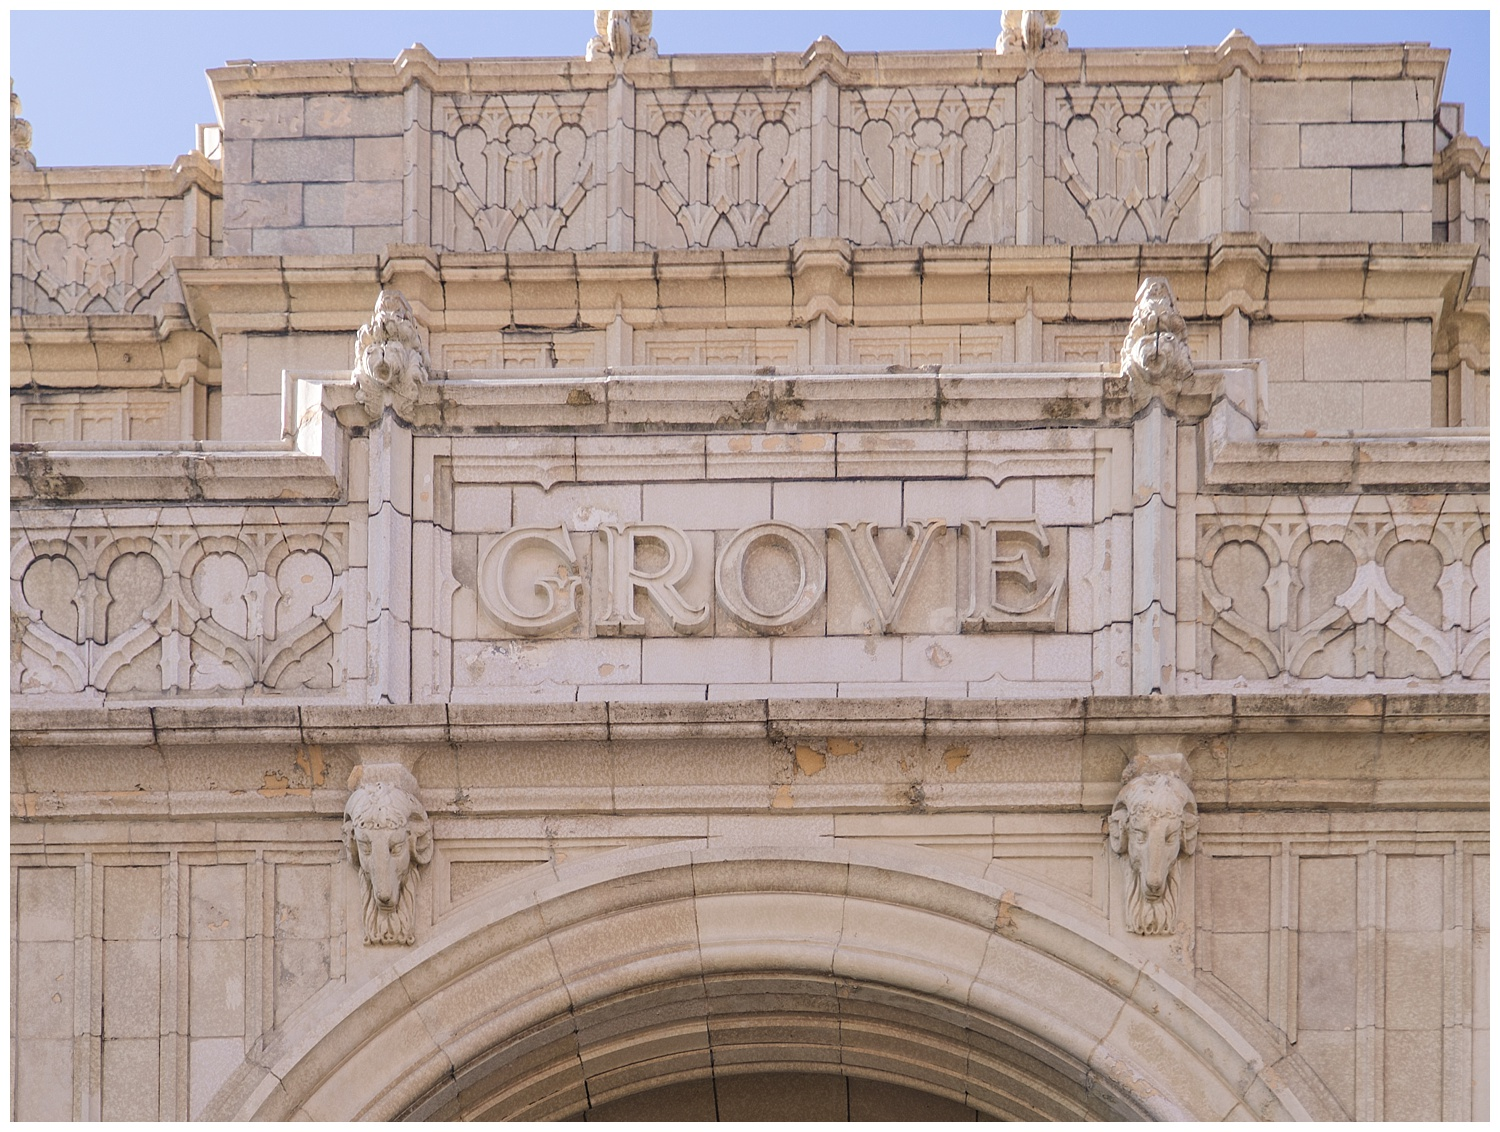 The Grove Arcade, Asheville, North Carolina